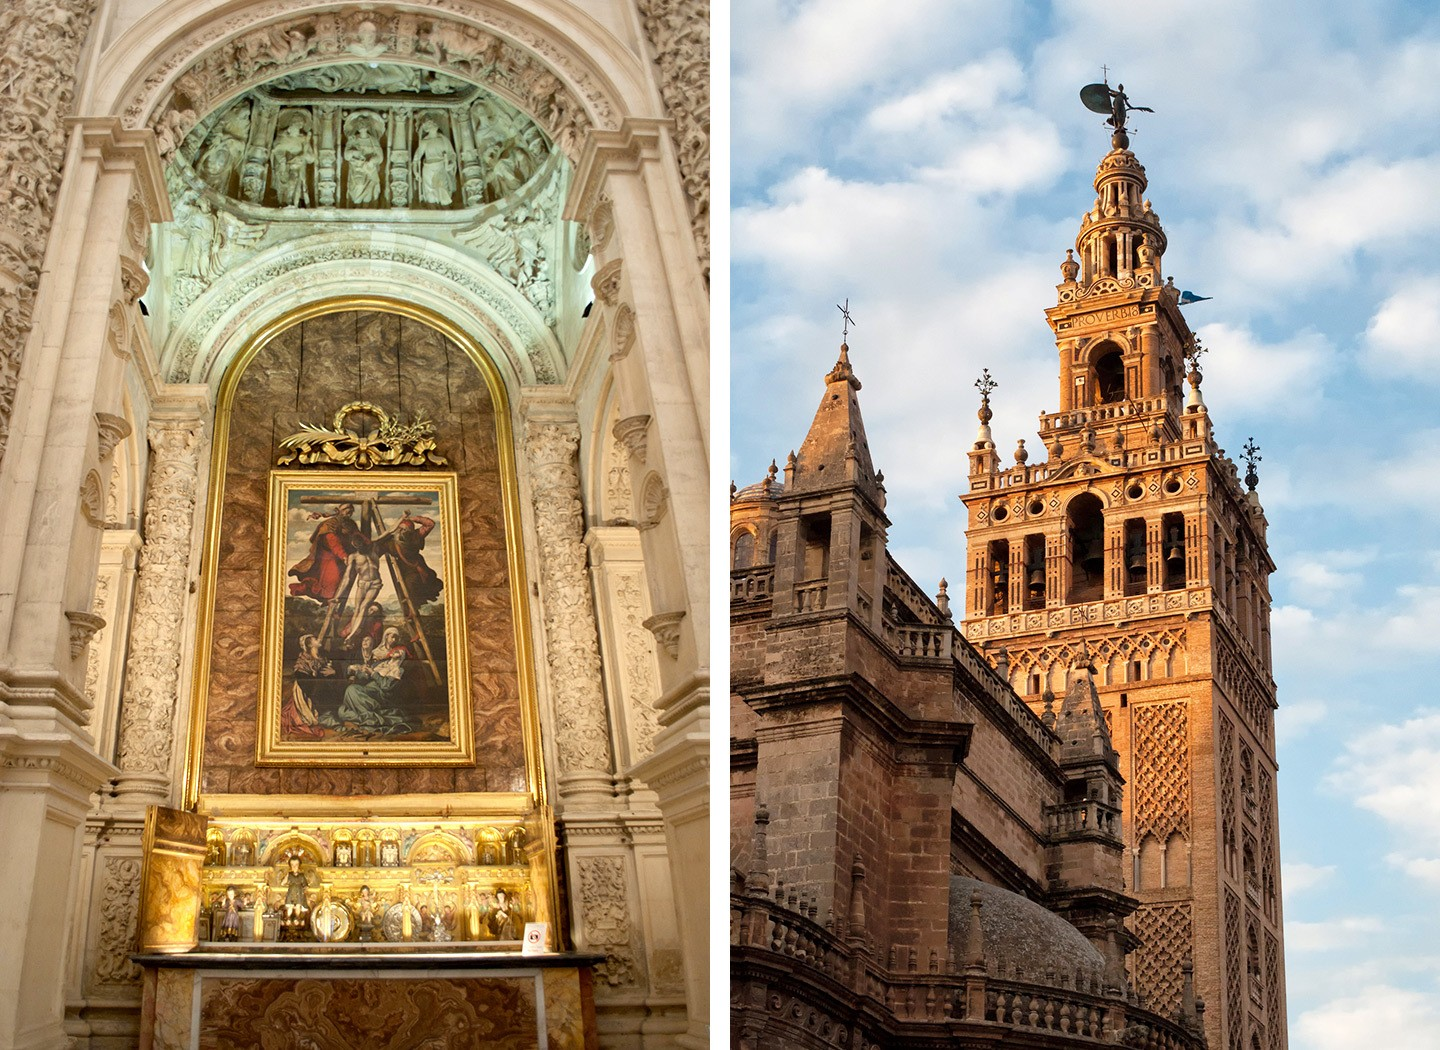 Seville cathedral interior and the Giralda bell tower